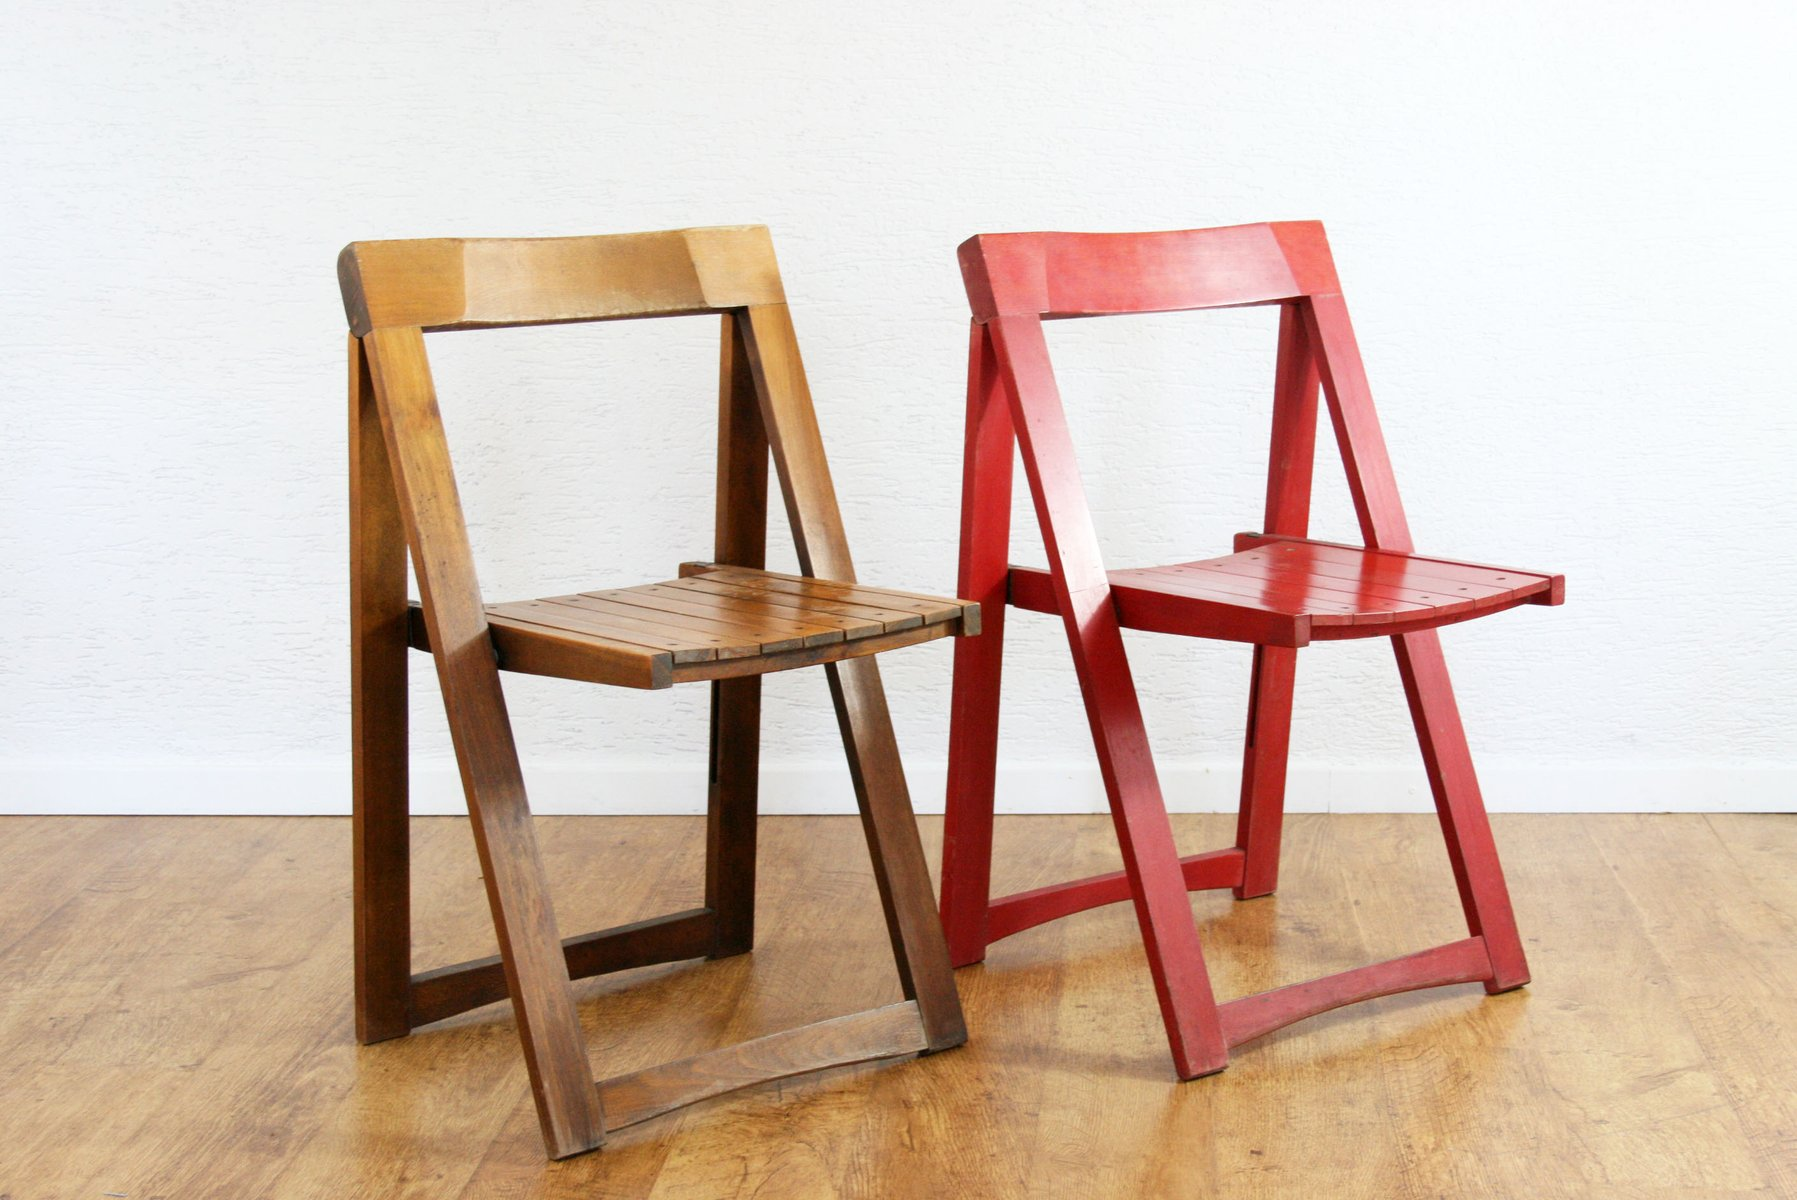 folding chair qatar ikea and a half mid century cream red chairs by aldo jacober